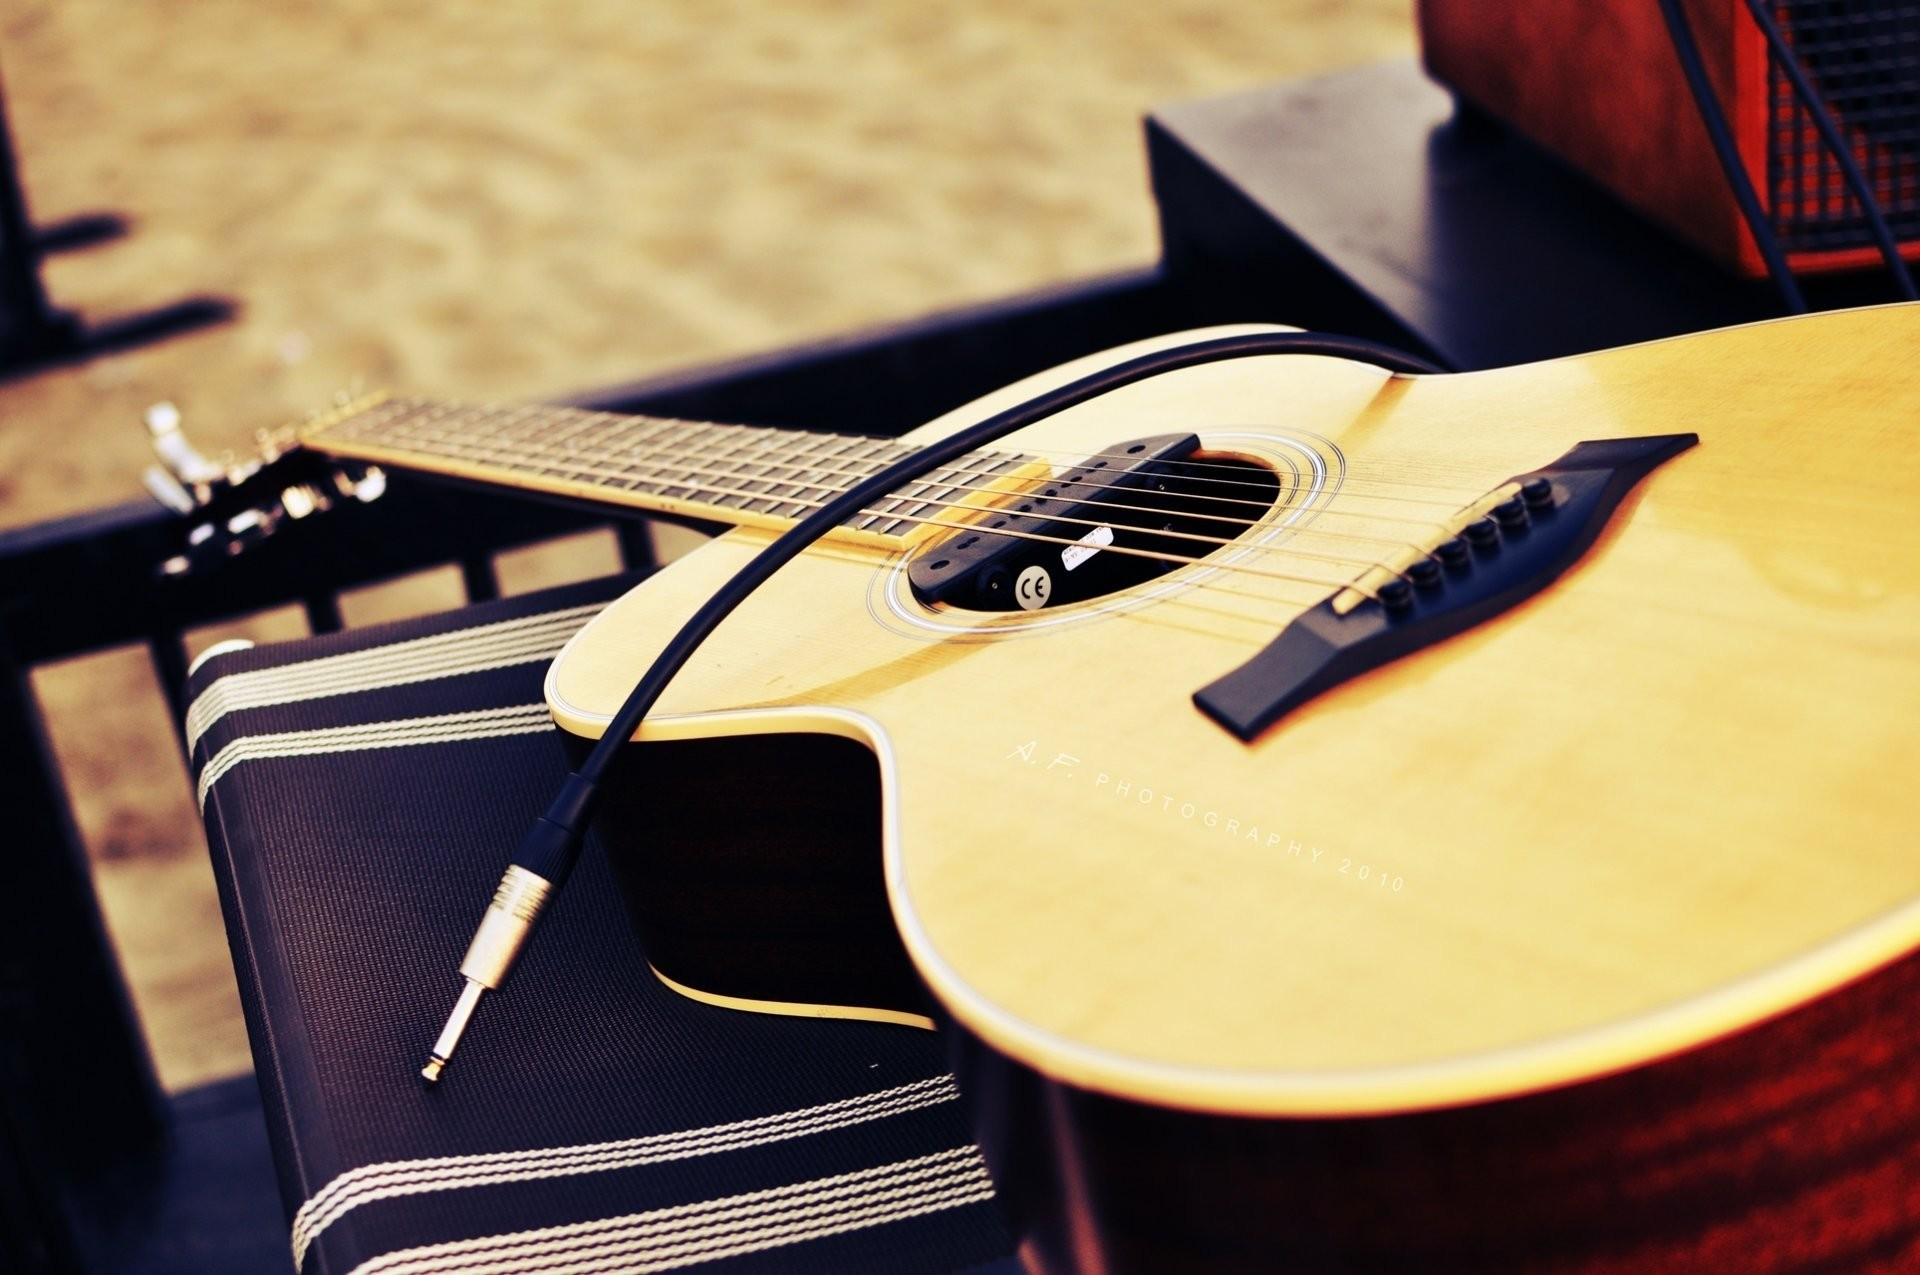 Musical instrument wallpapers - Music hd wallpapers free download ...